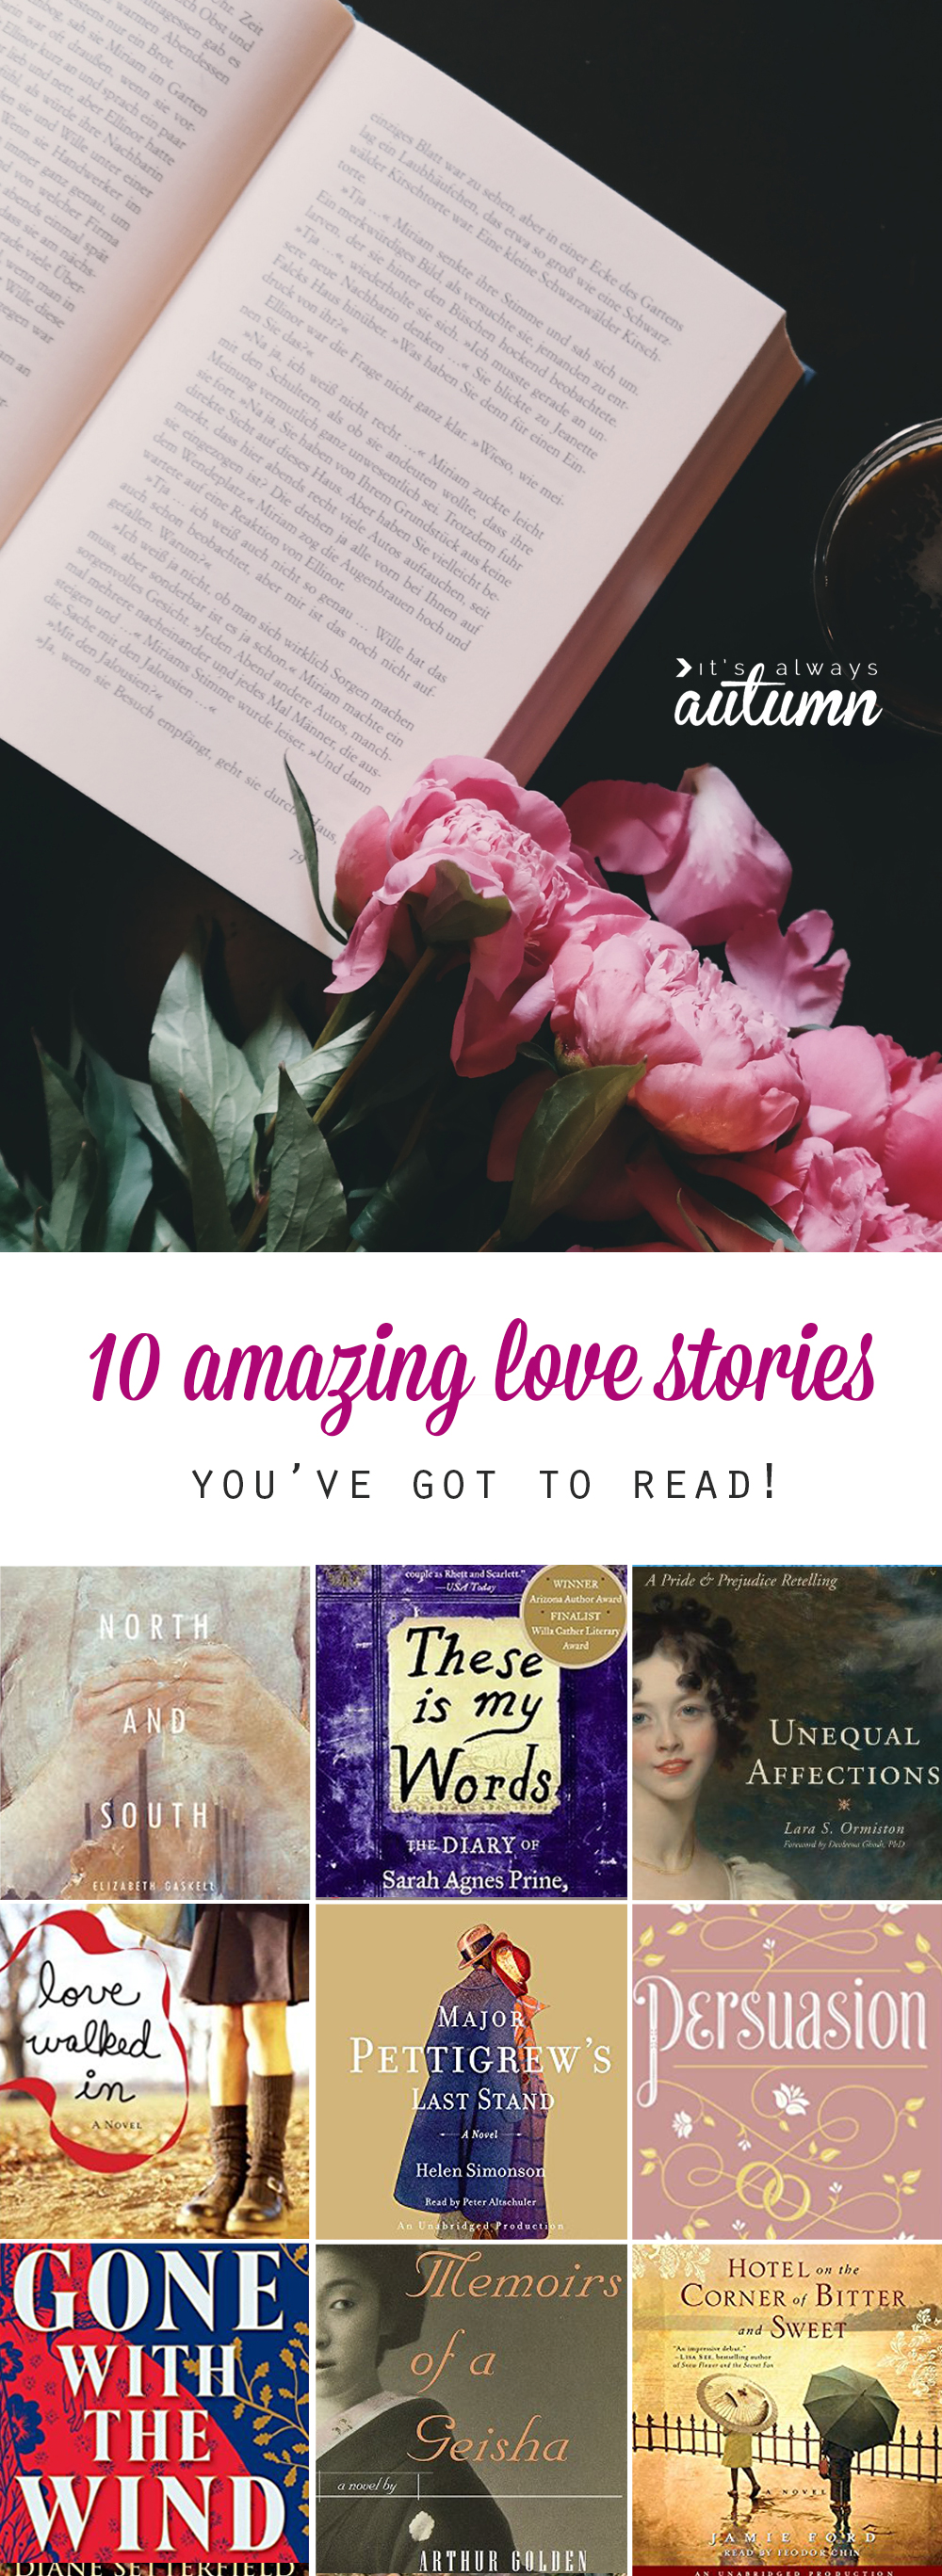 Love Stories - Real-Life True Romantic Stories | Reader's ...